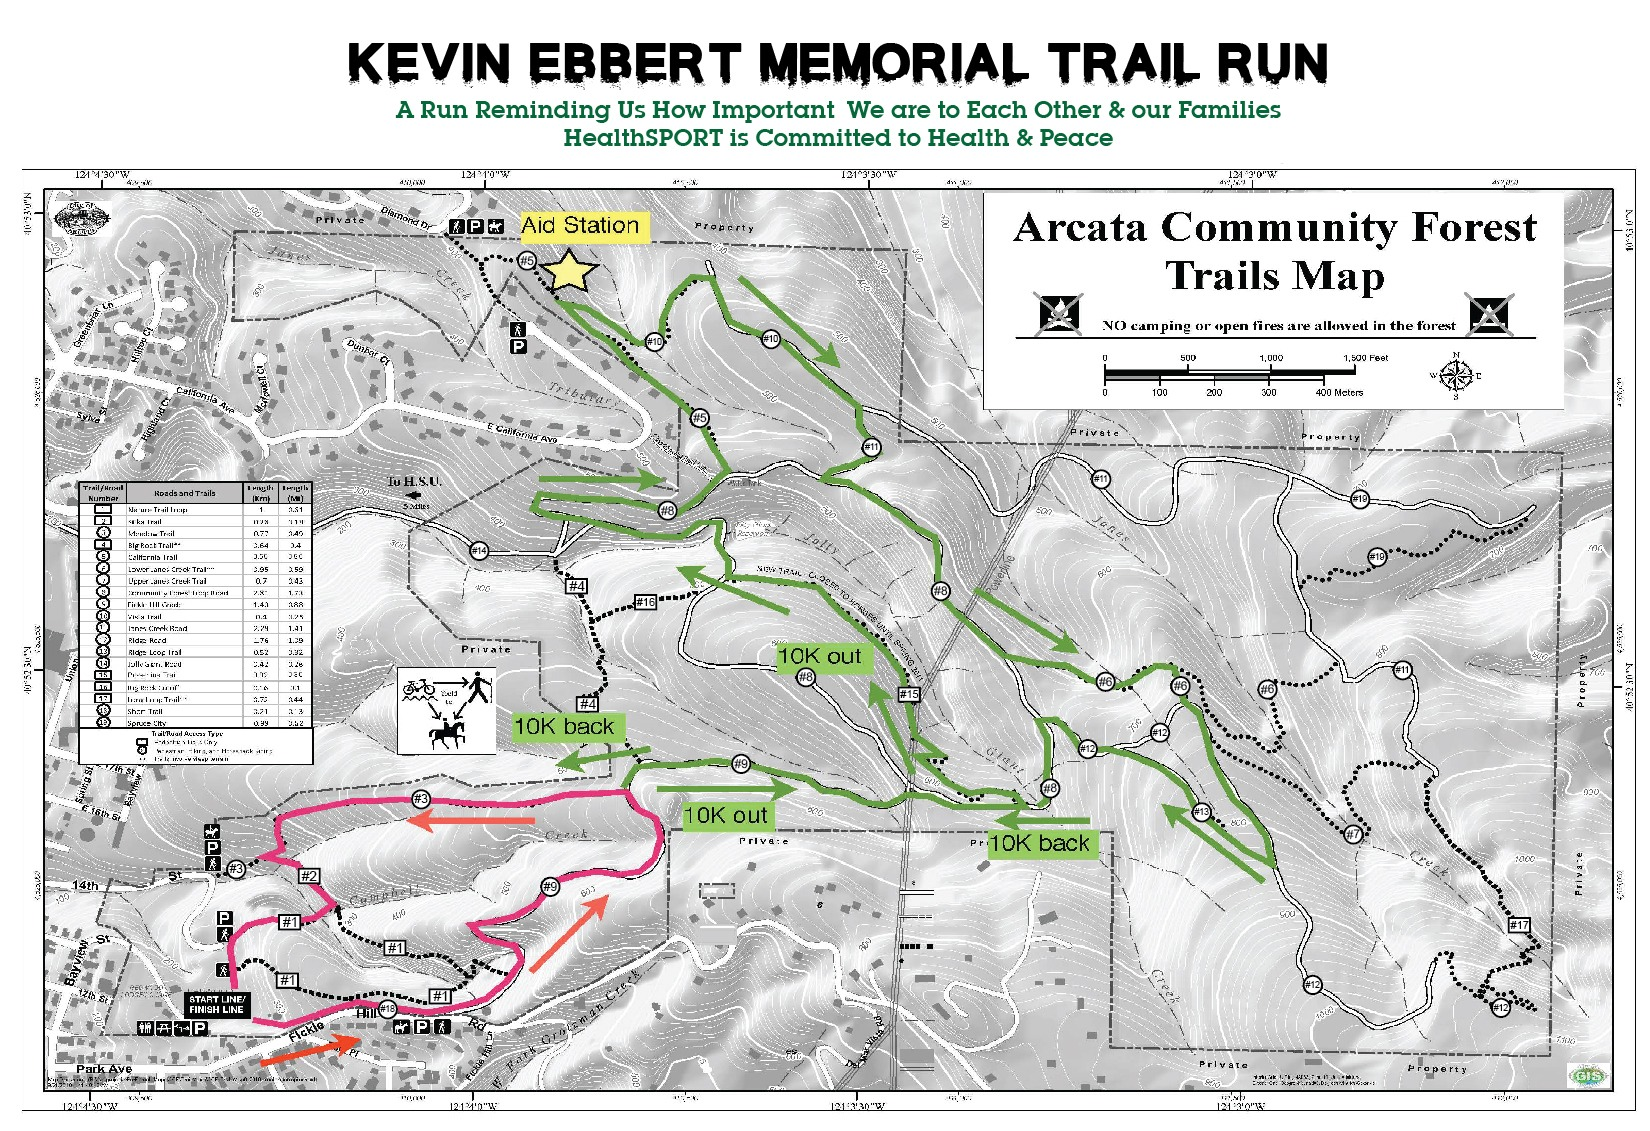 Kevin Ebbert Memorial Trail Map